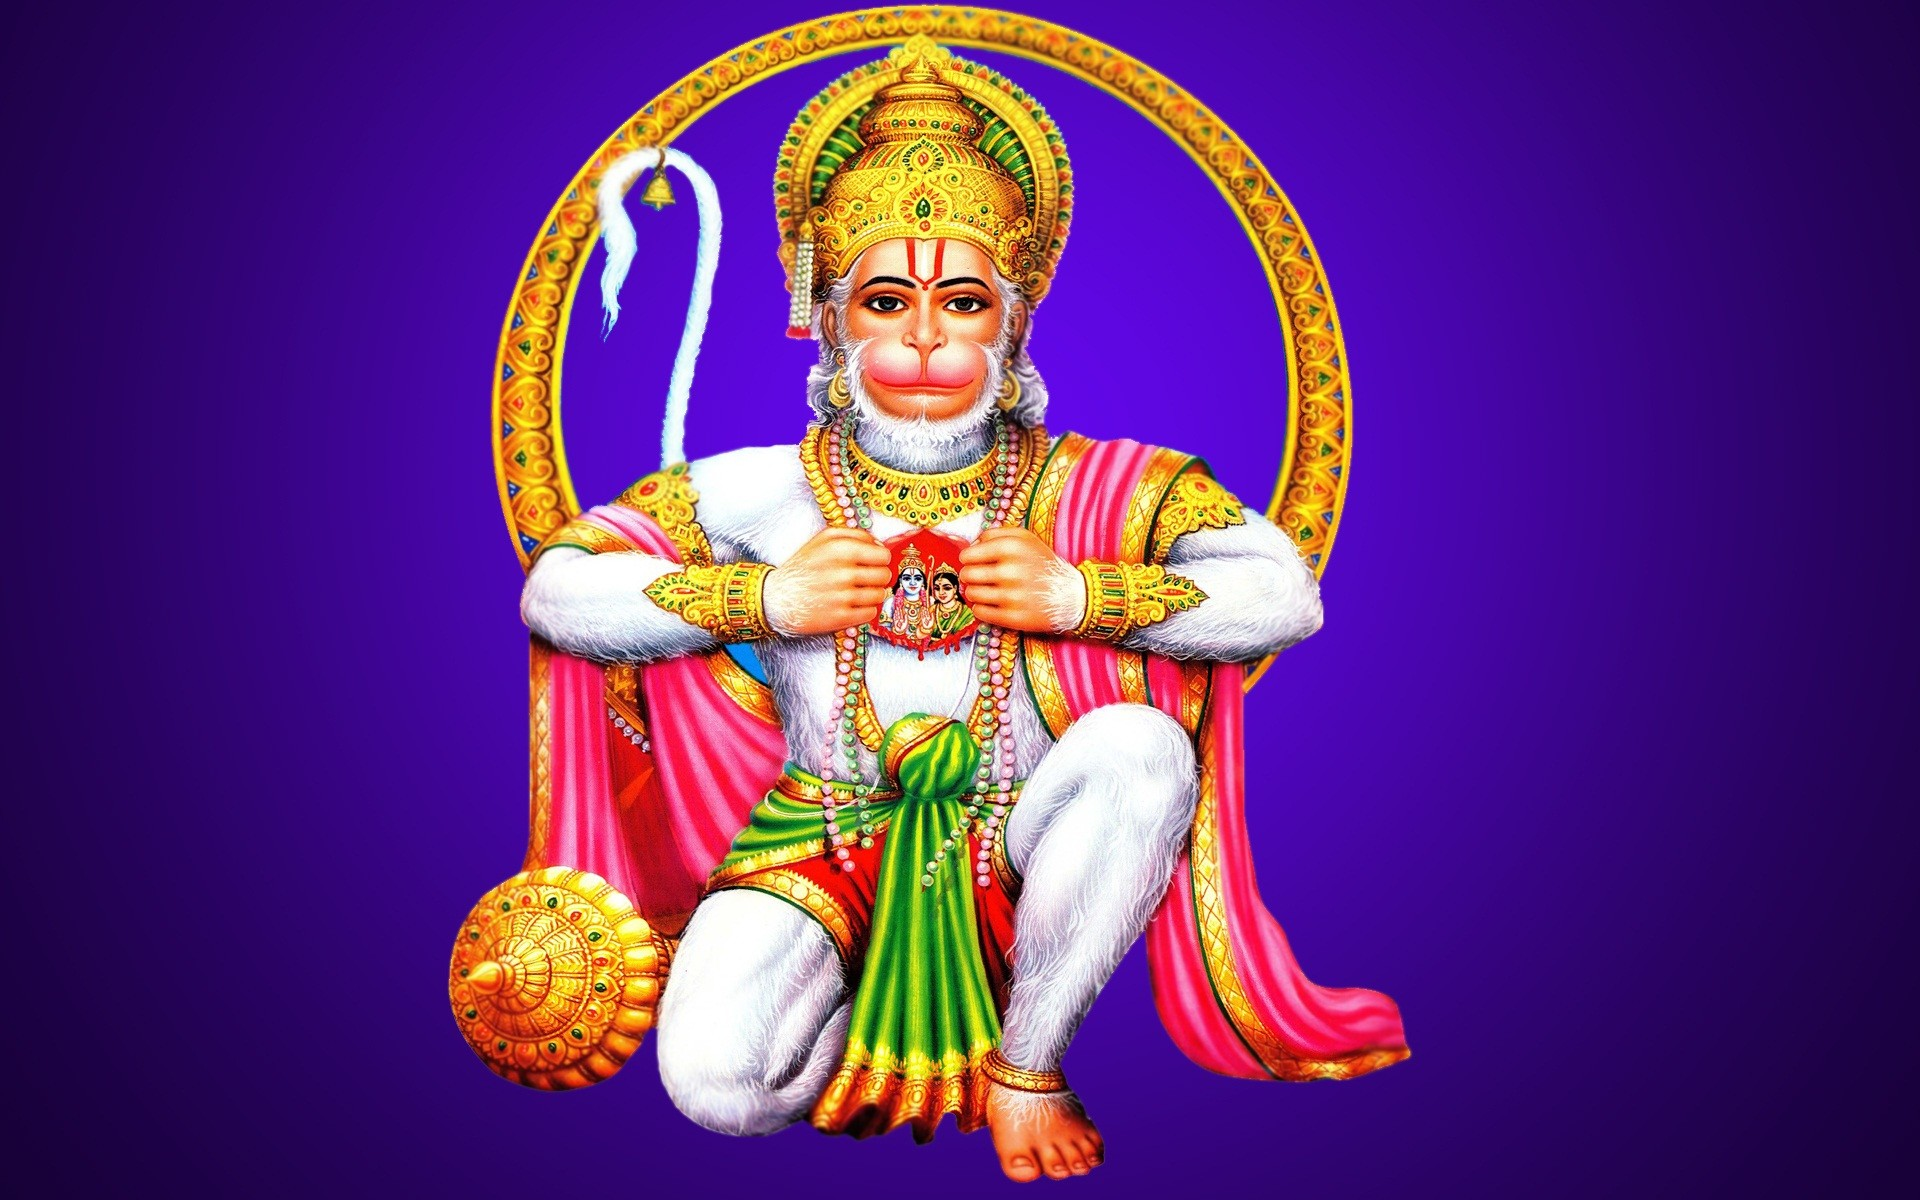 1920x1200 Download Lord Hanuman Shri Ram HD Wallpapers Ji